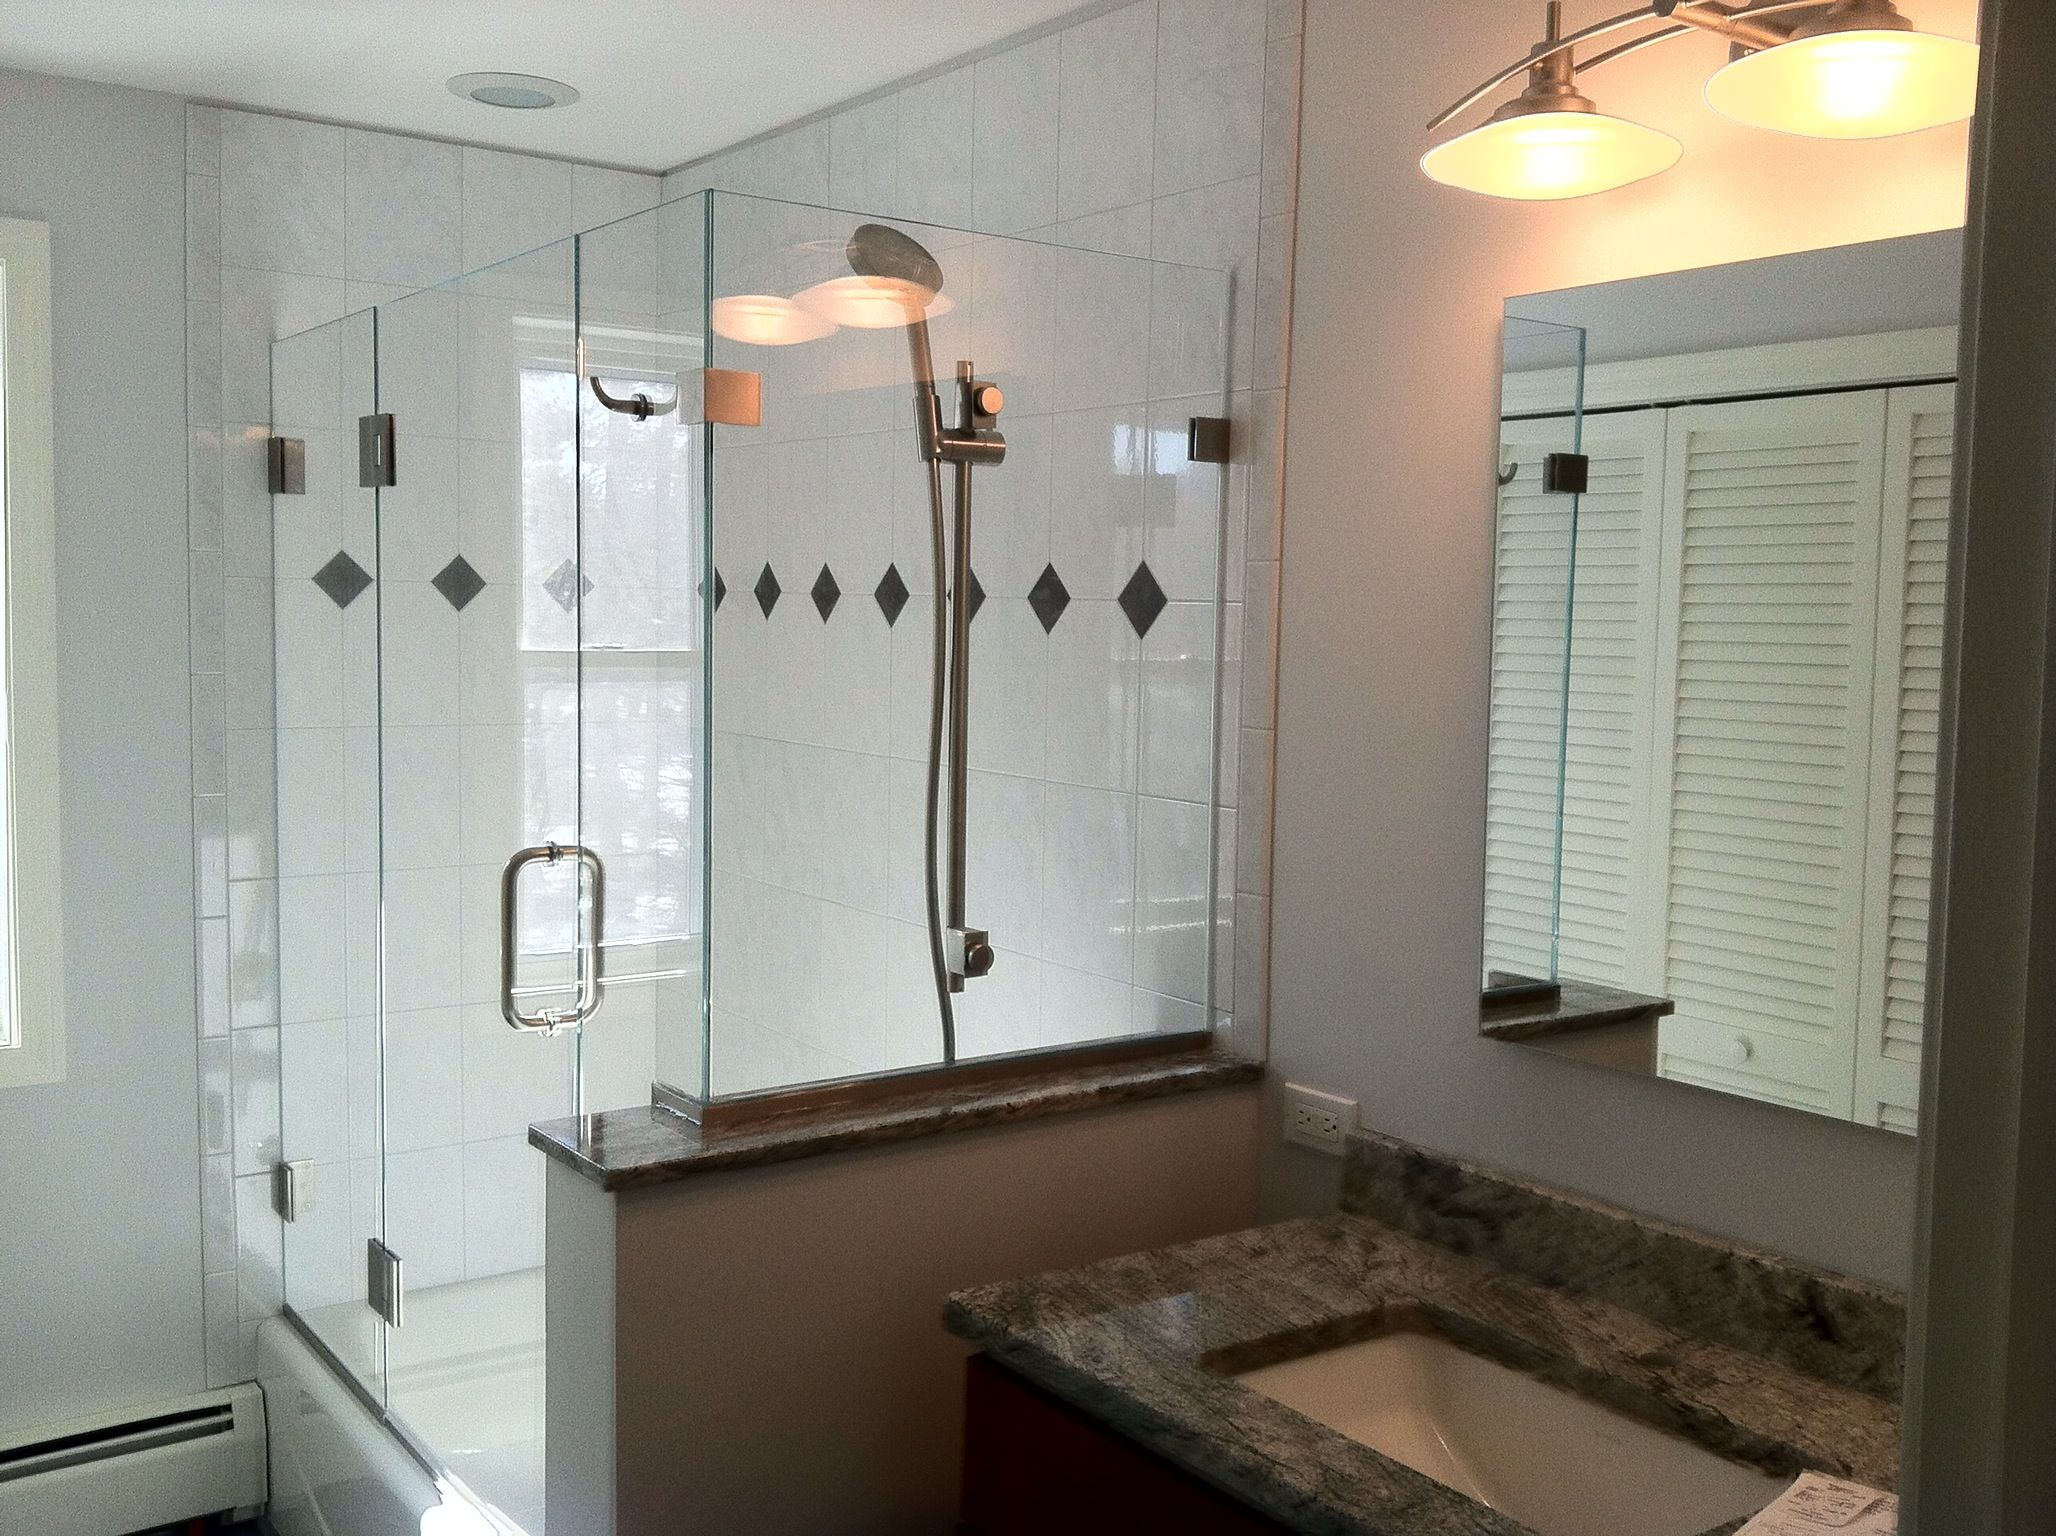 Shower Head Mounted Through Glass Bathrooms In 2019